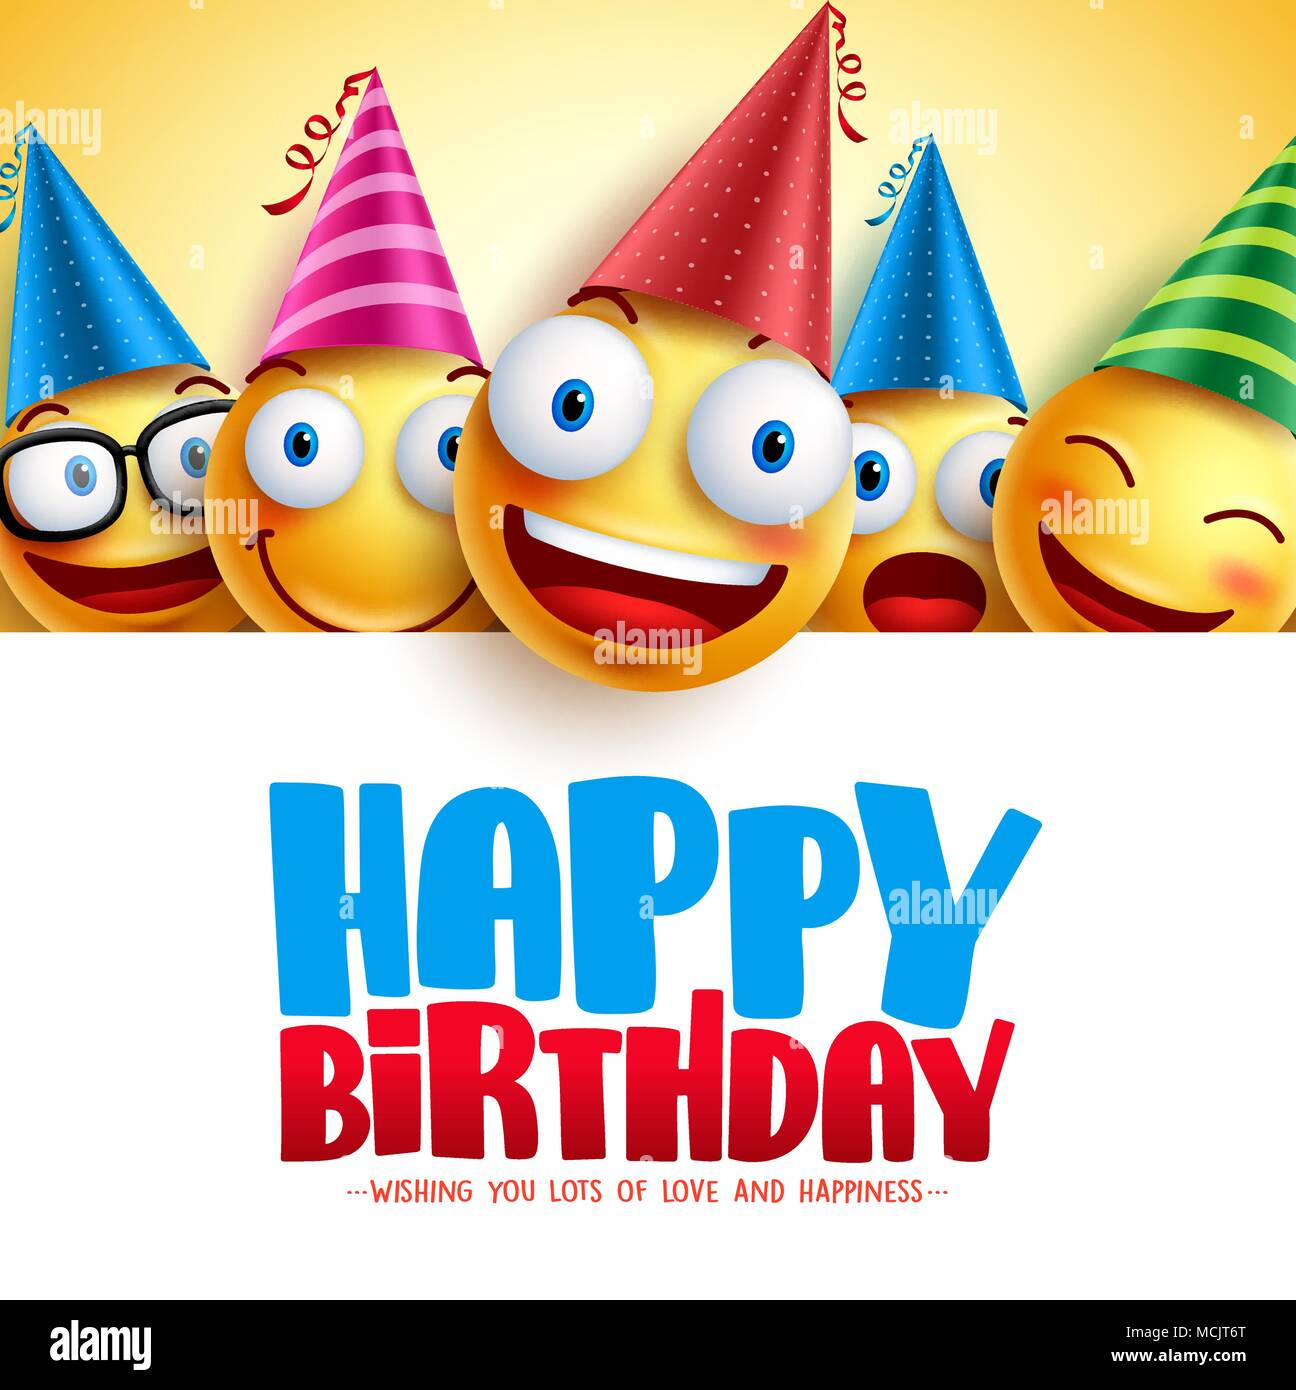 Happy Birthday Smileys Vector Background Design With Yellow Funny And Emoticons Greeting Text